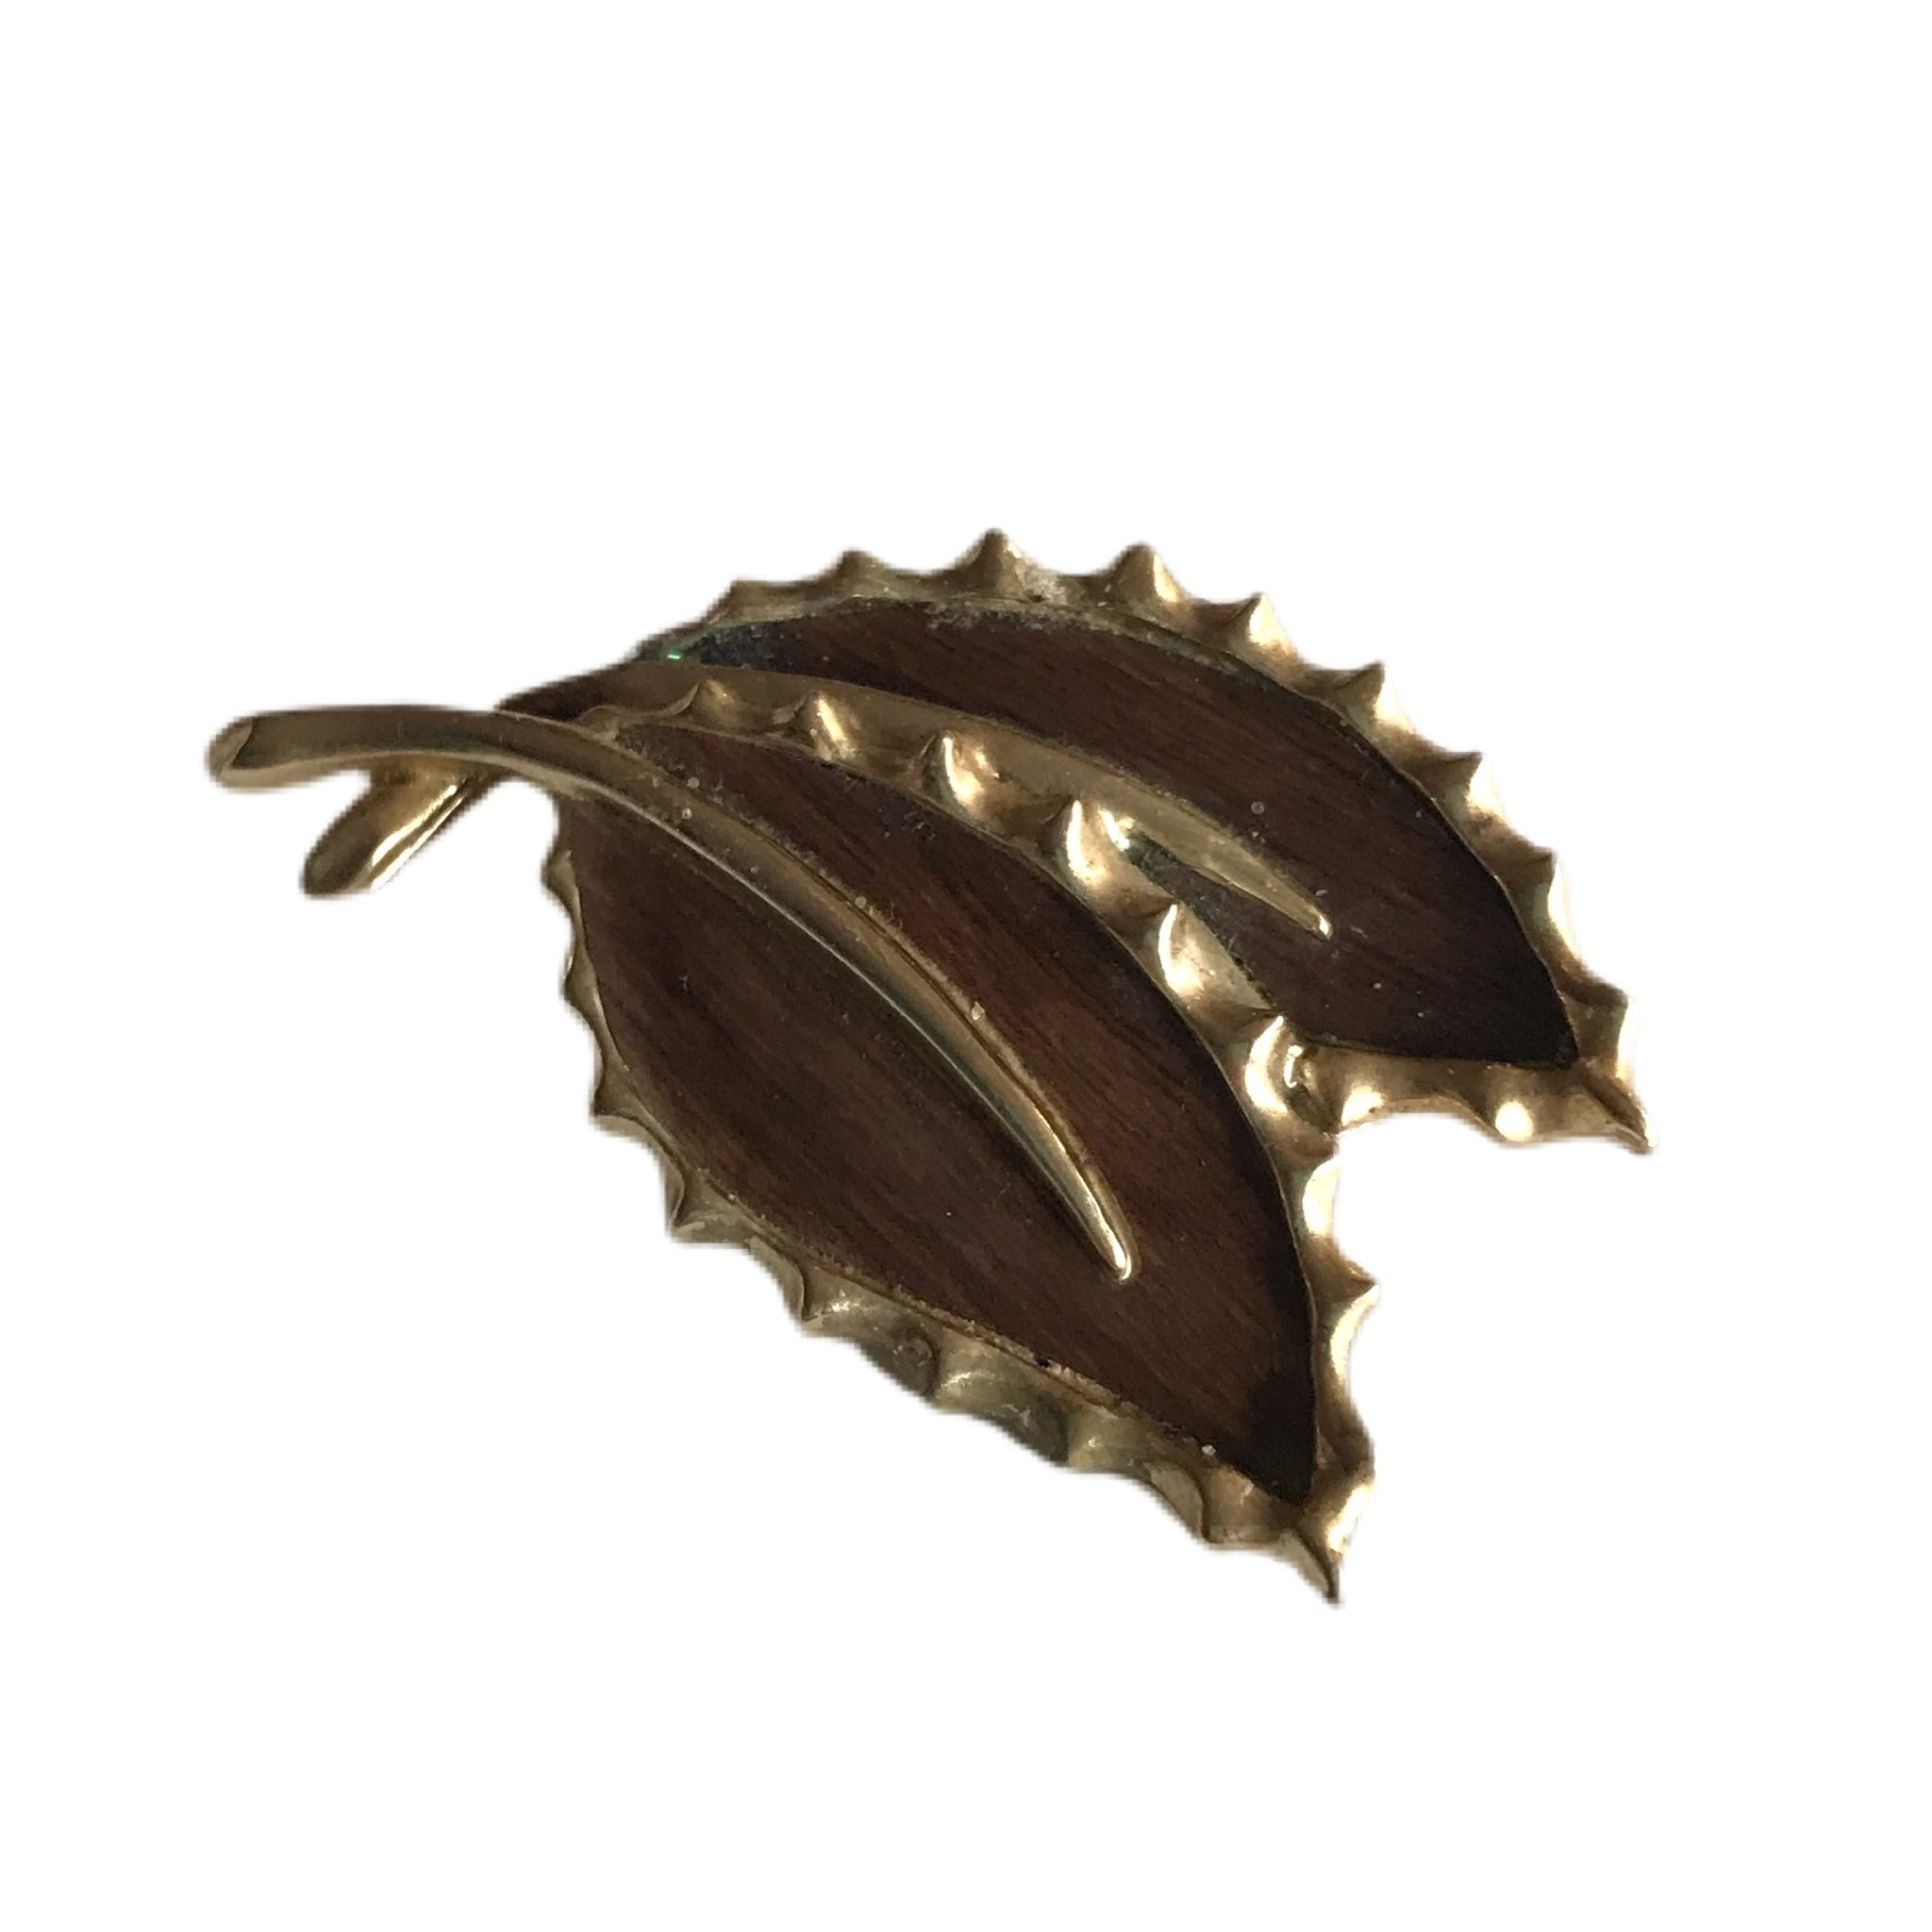 Woodgrain and Gold Tone Metal Leaf Duo Brooch circa 1960s